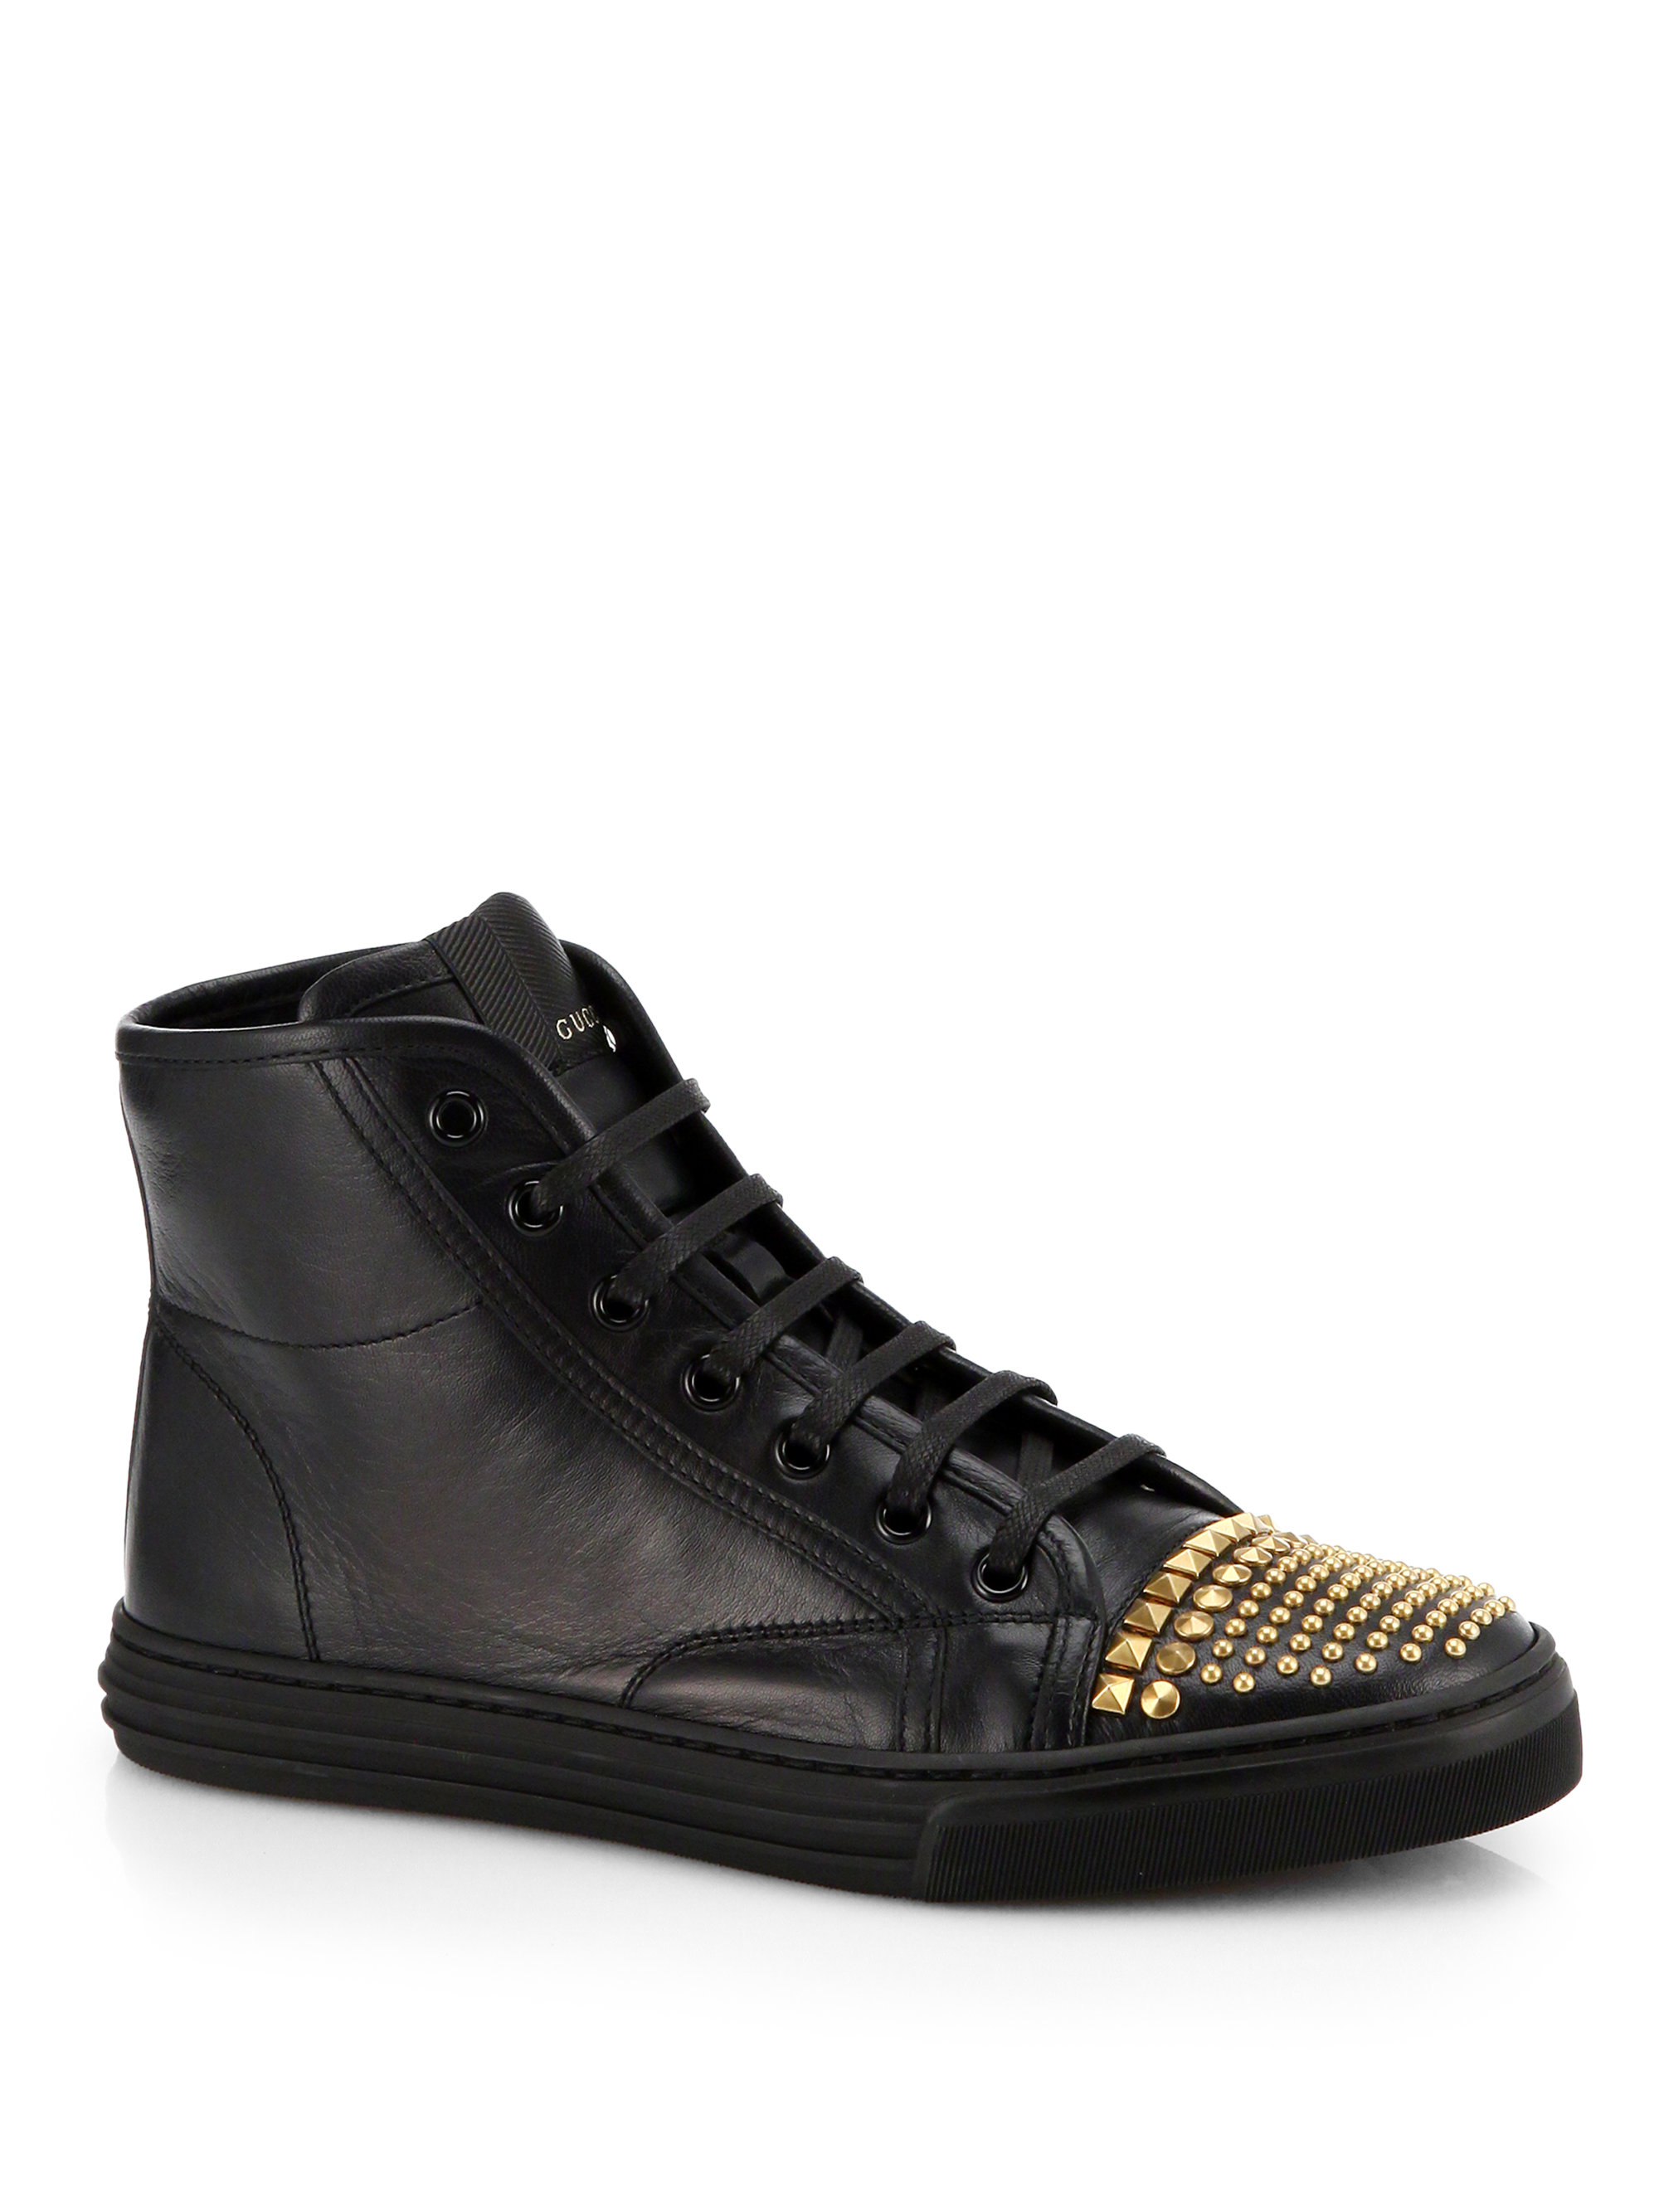 gucci cali leather studded cap toe high top sneakers in. Black Bedroom Furniture Sets. Home Design Ideas